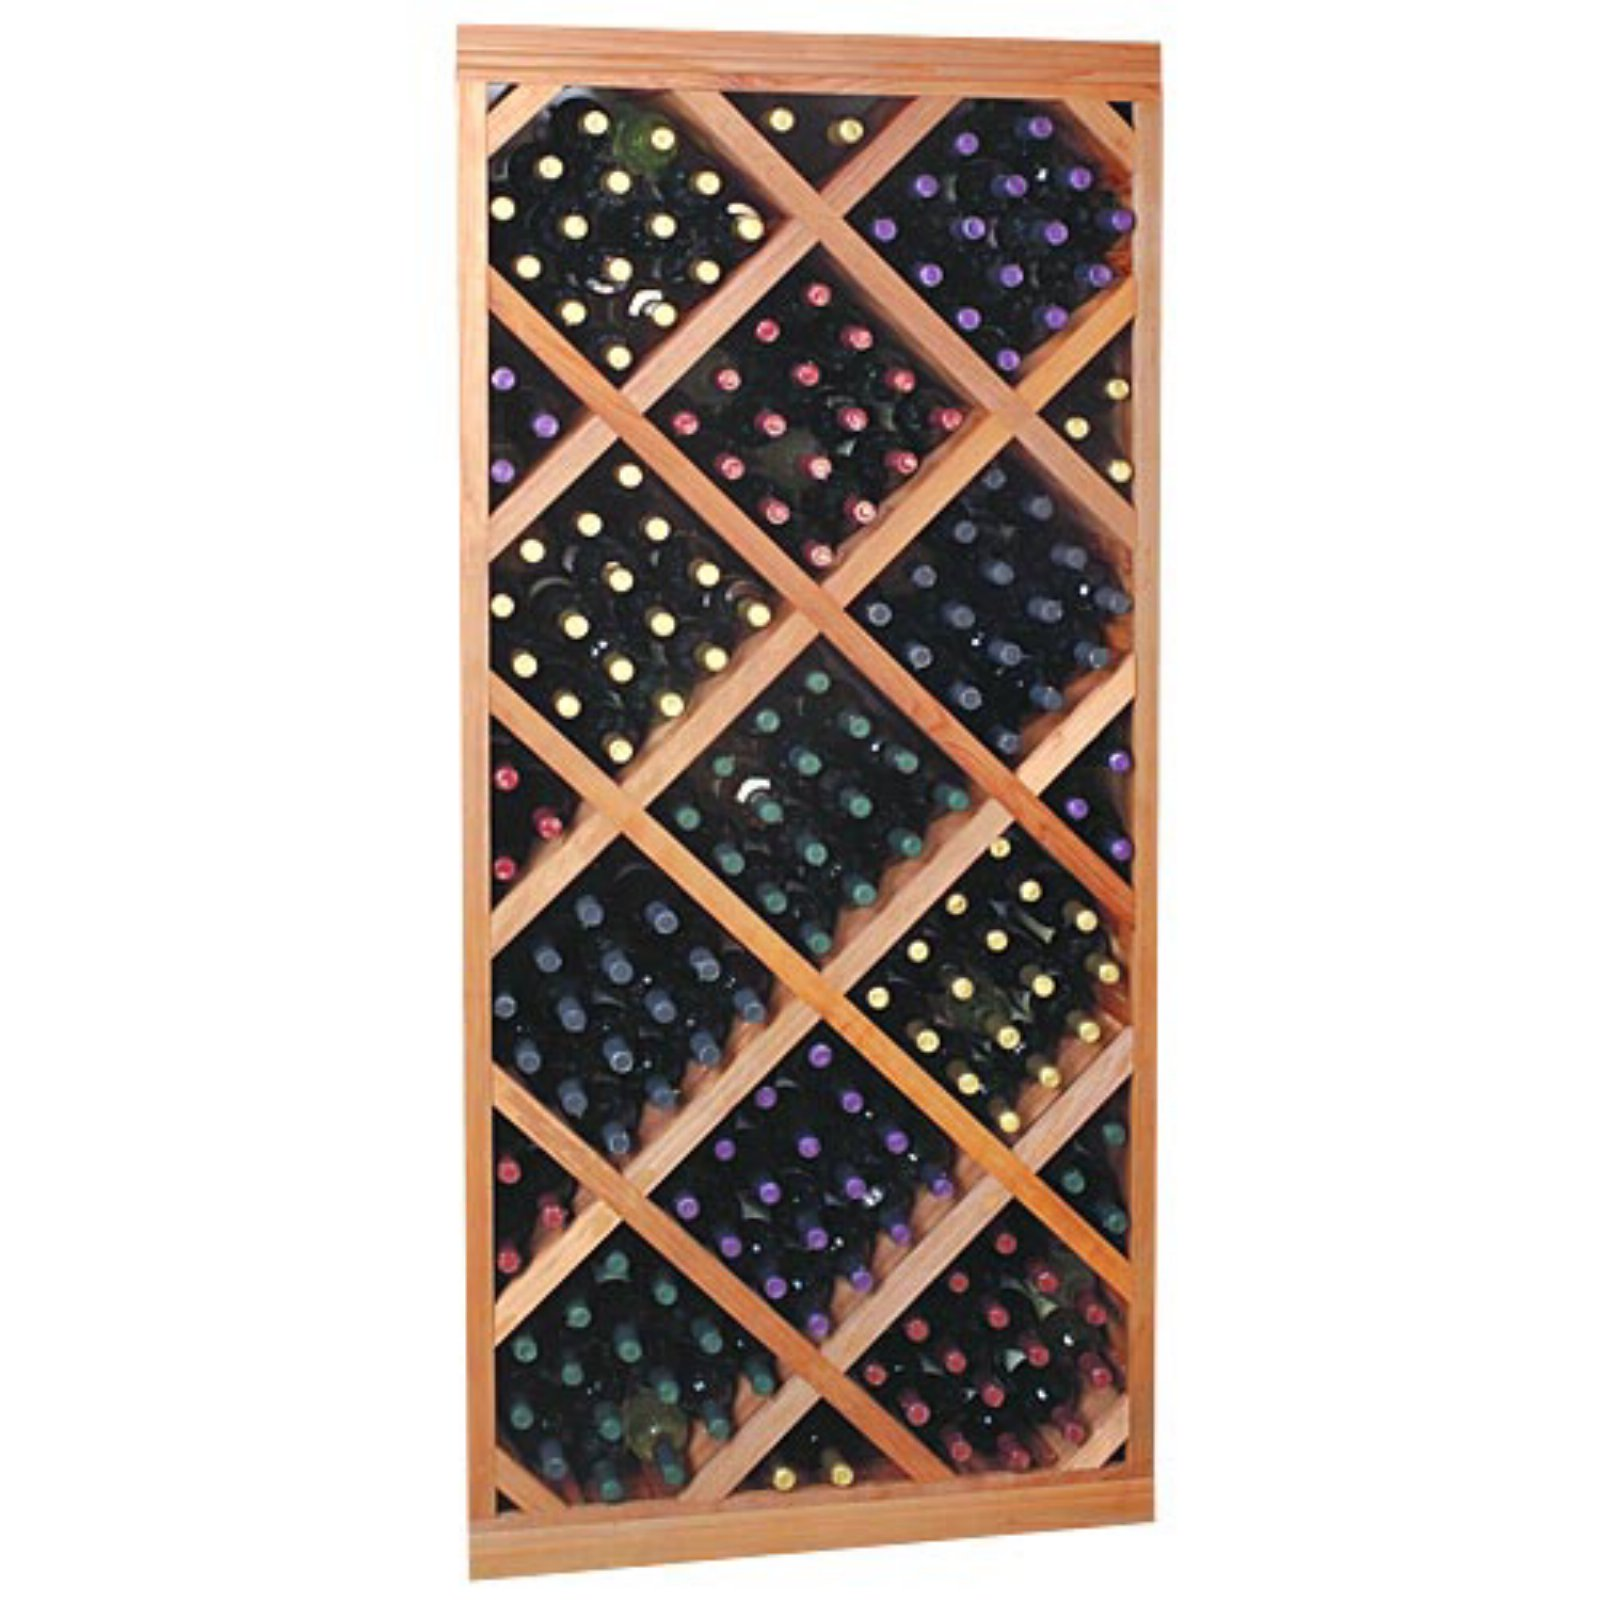 Designer Series 212-Bottle Diamond Bin Wine Rack